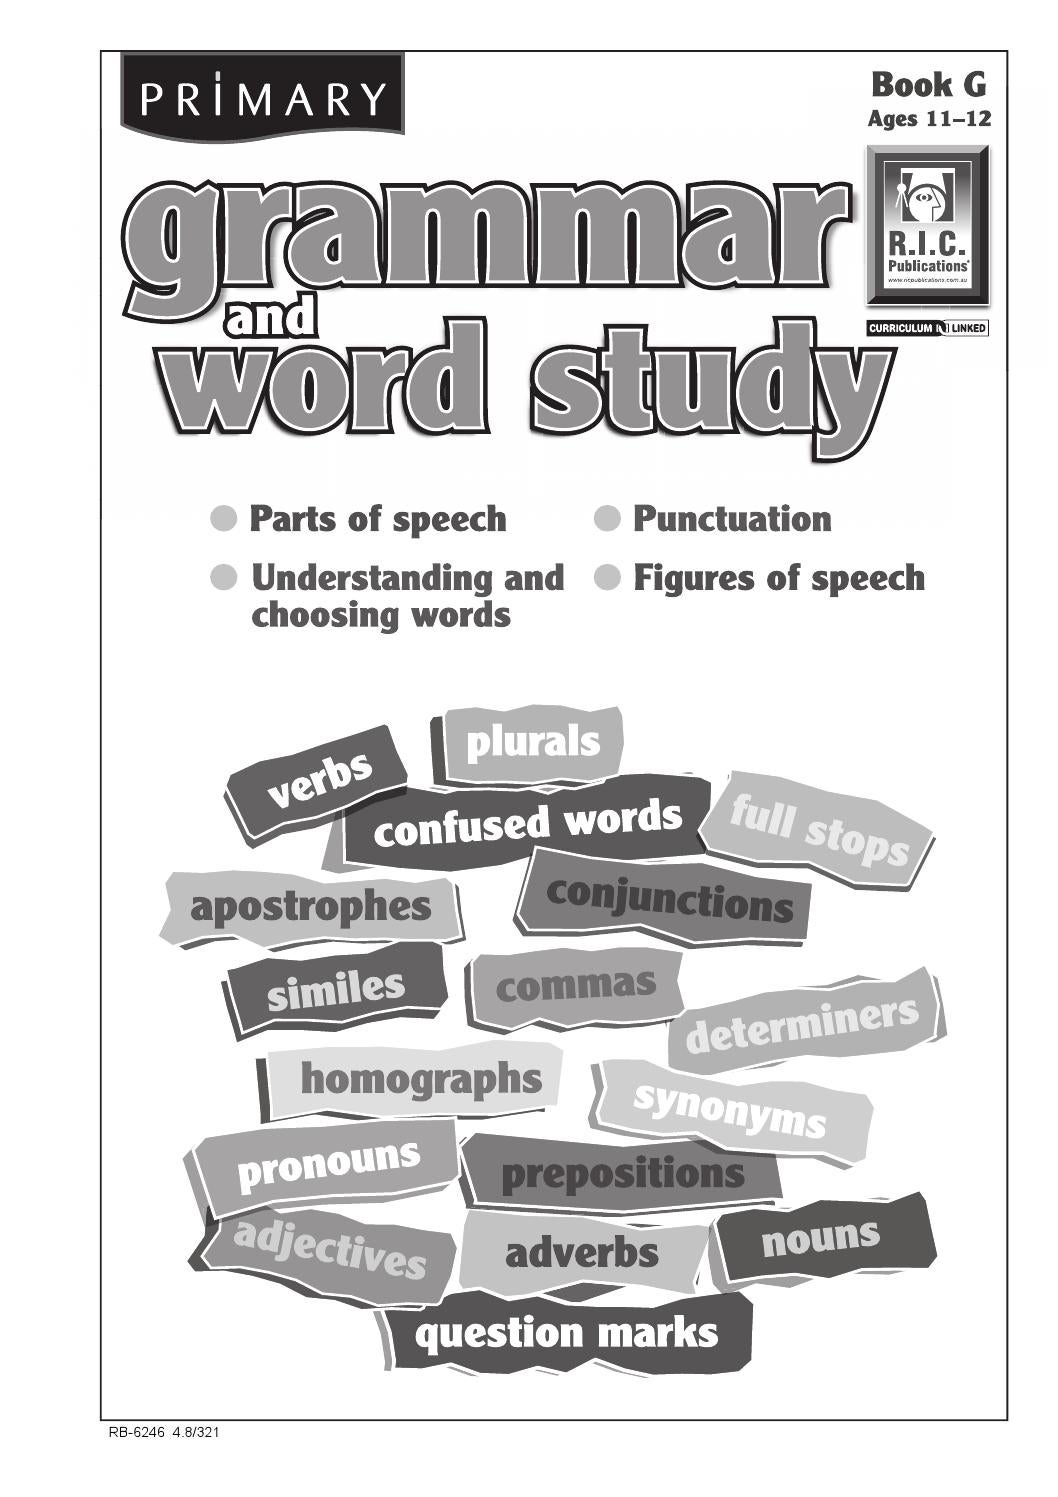 hight resolution of Primary Grammar and Word Study: Book G - Ages 11+ by Teacher Superstore -  issuu